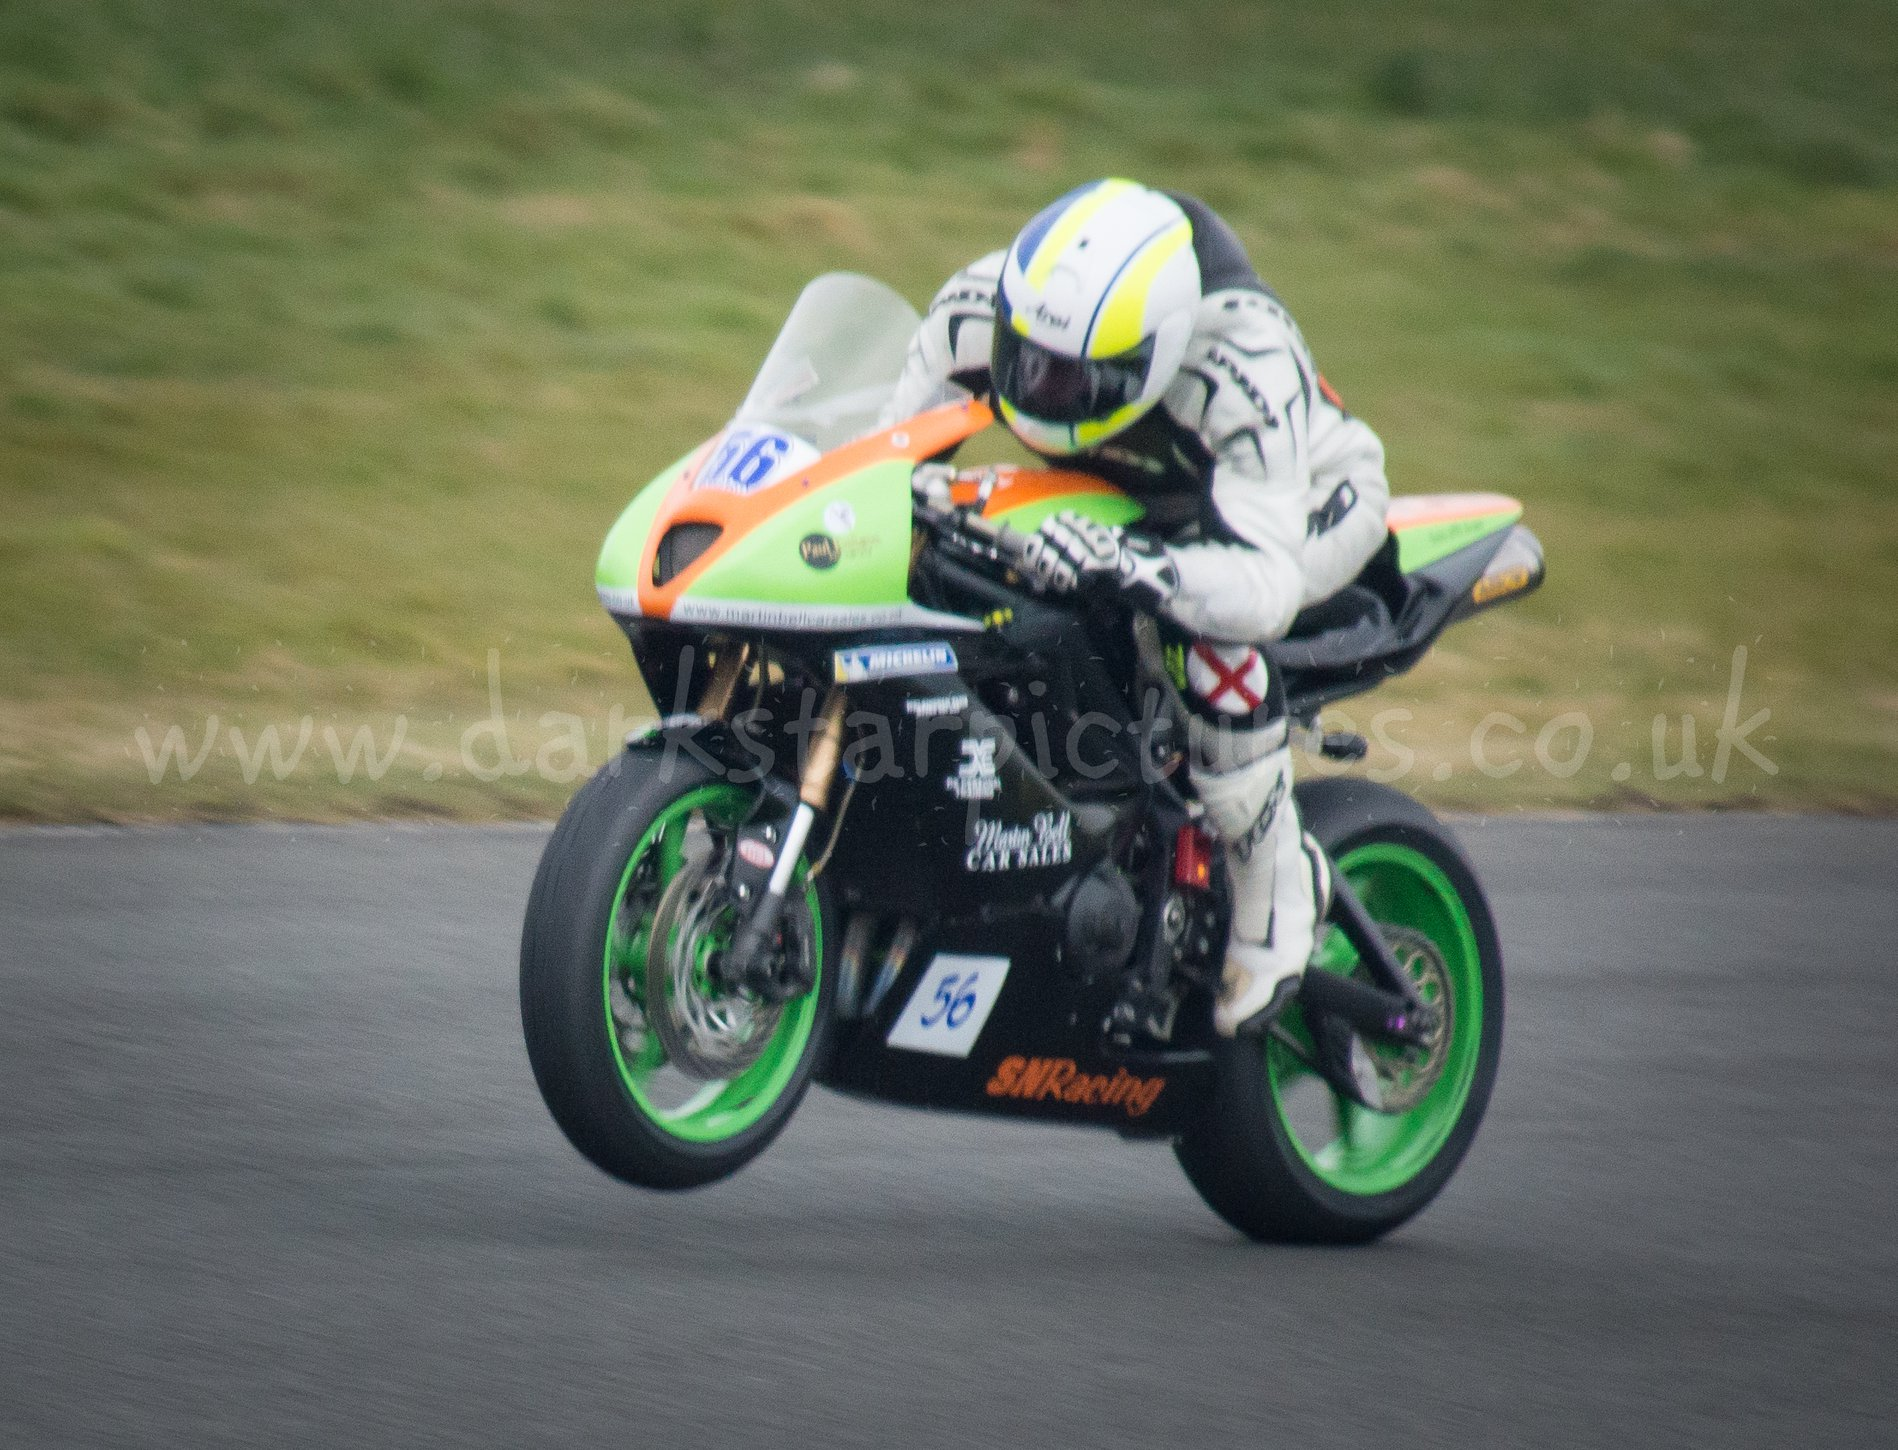 Ten Questions Challenge – Kevin Barsby